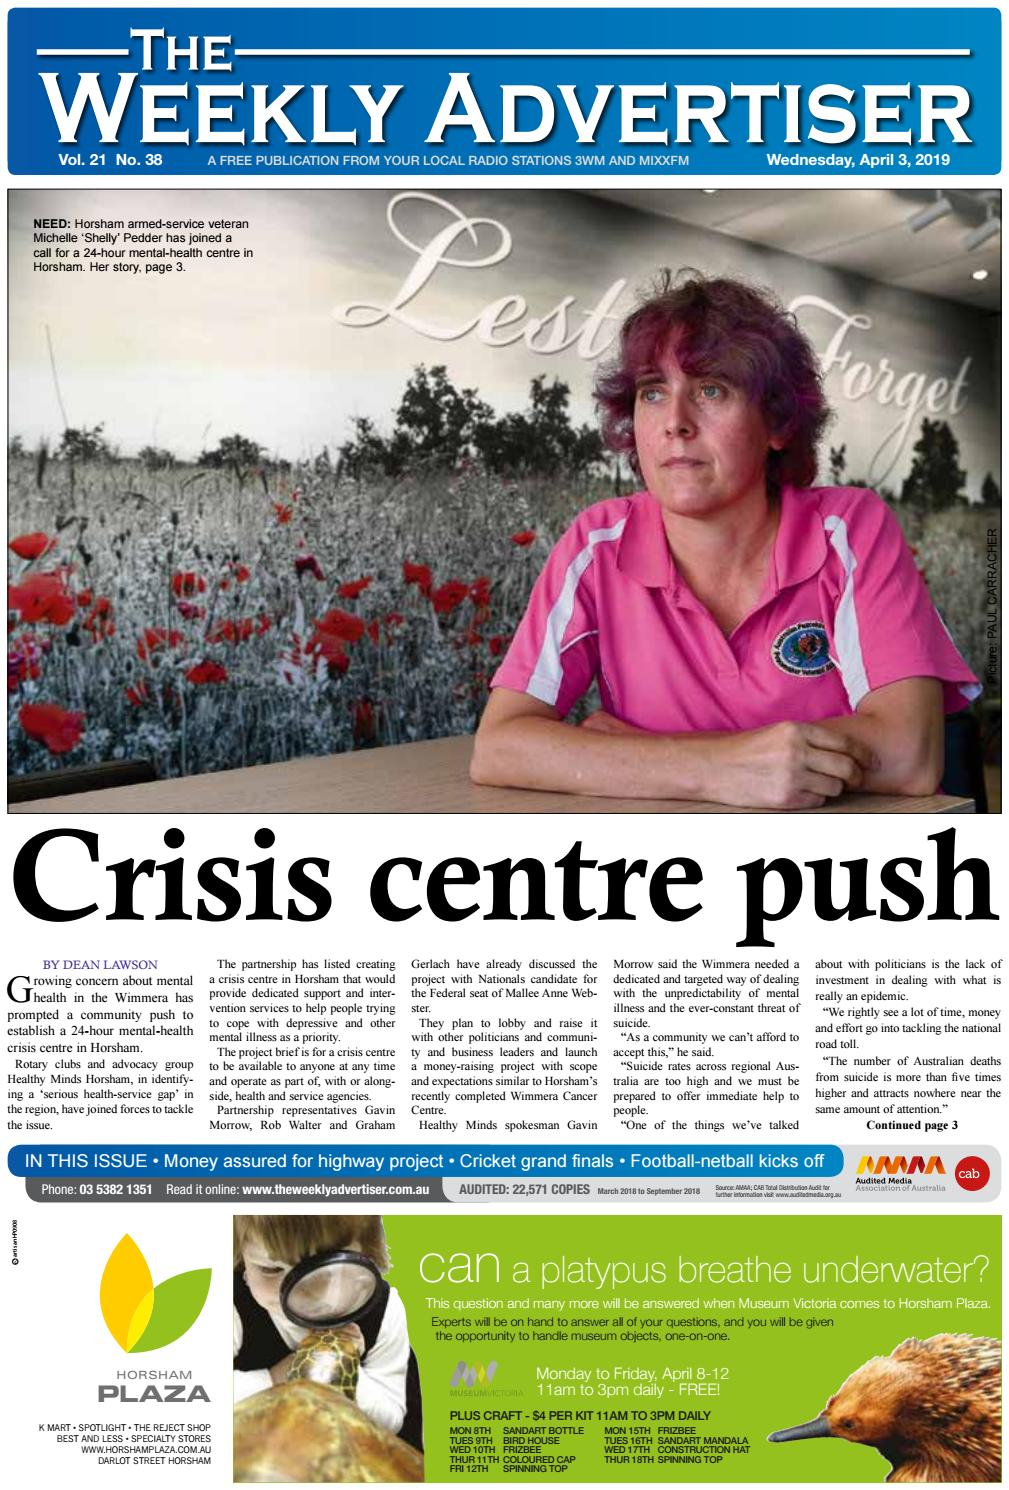 The Weekly Advertiser - Wednesday, April 3, 2019 by The